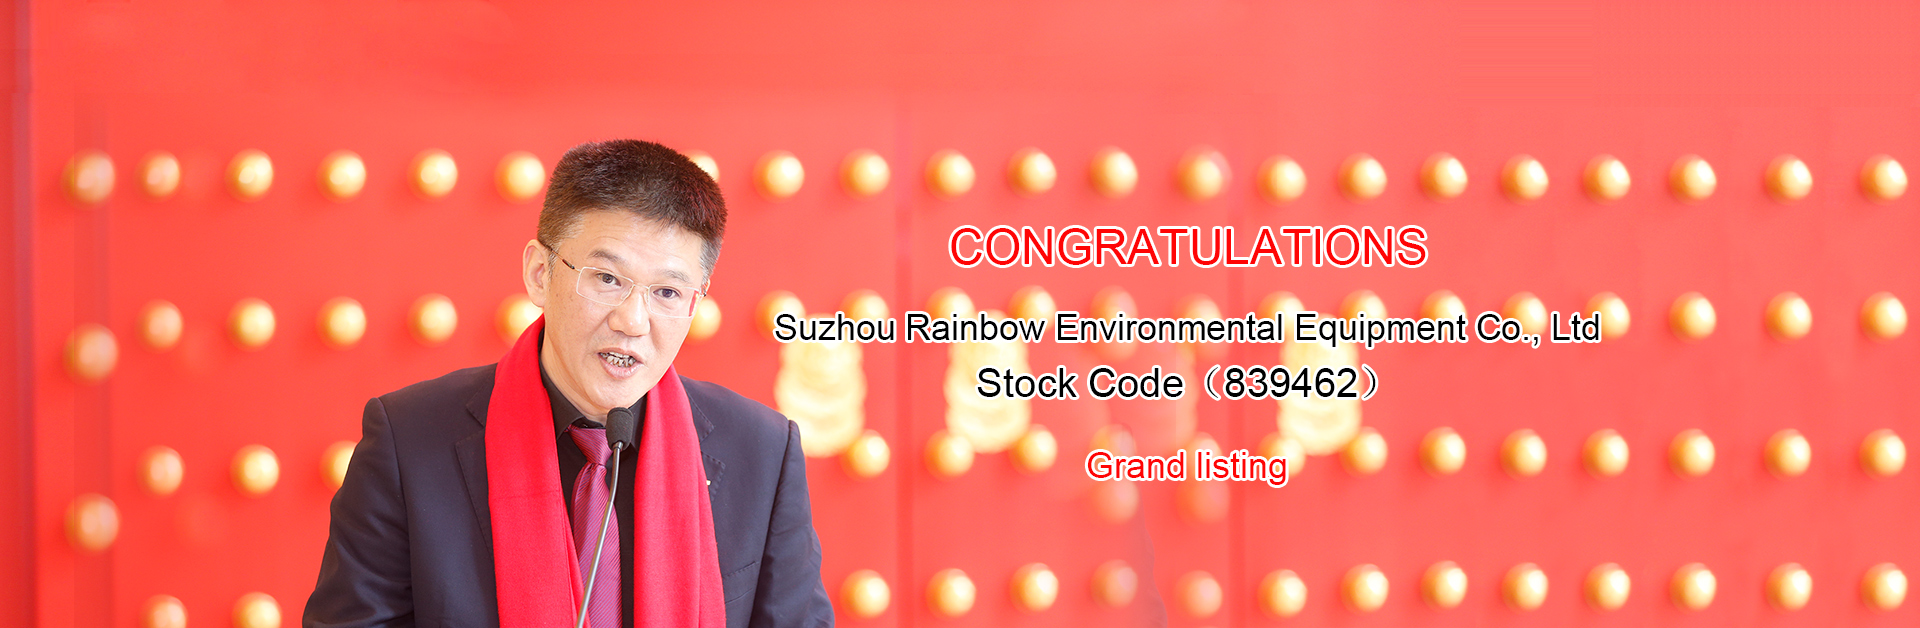 Rainbow Environmental Equipment Co., Ltd